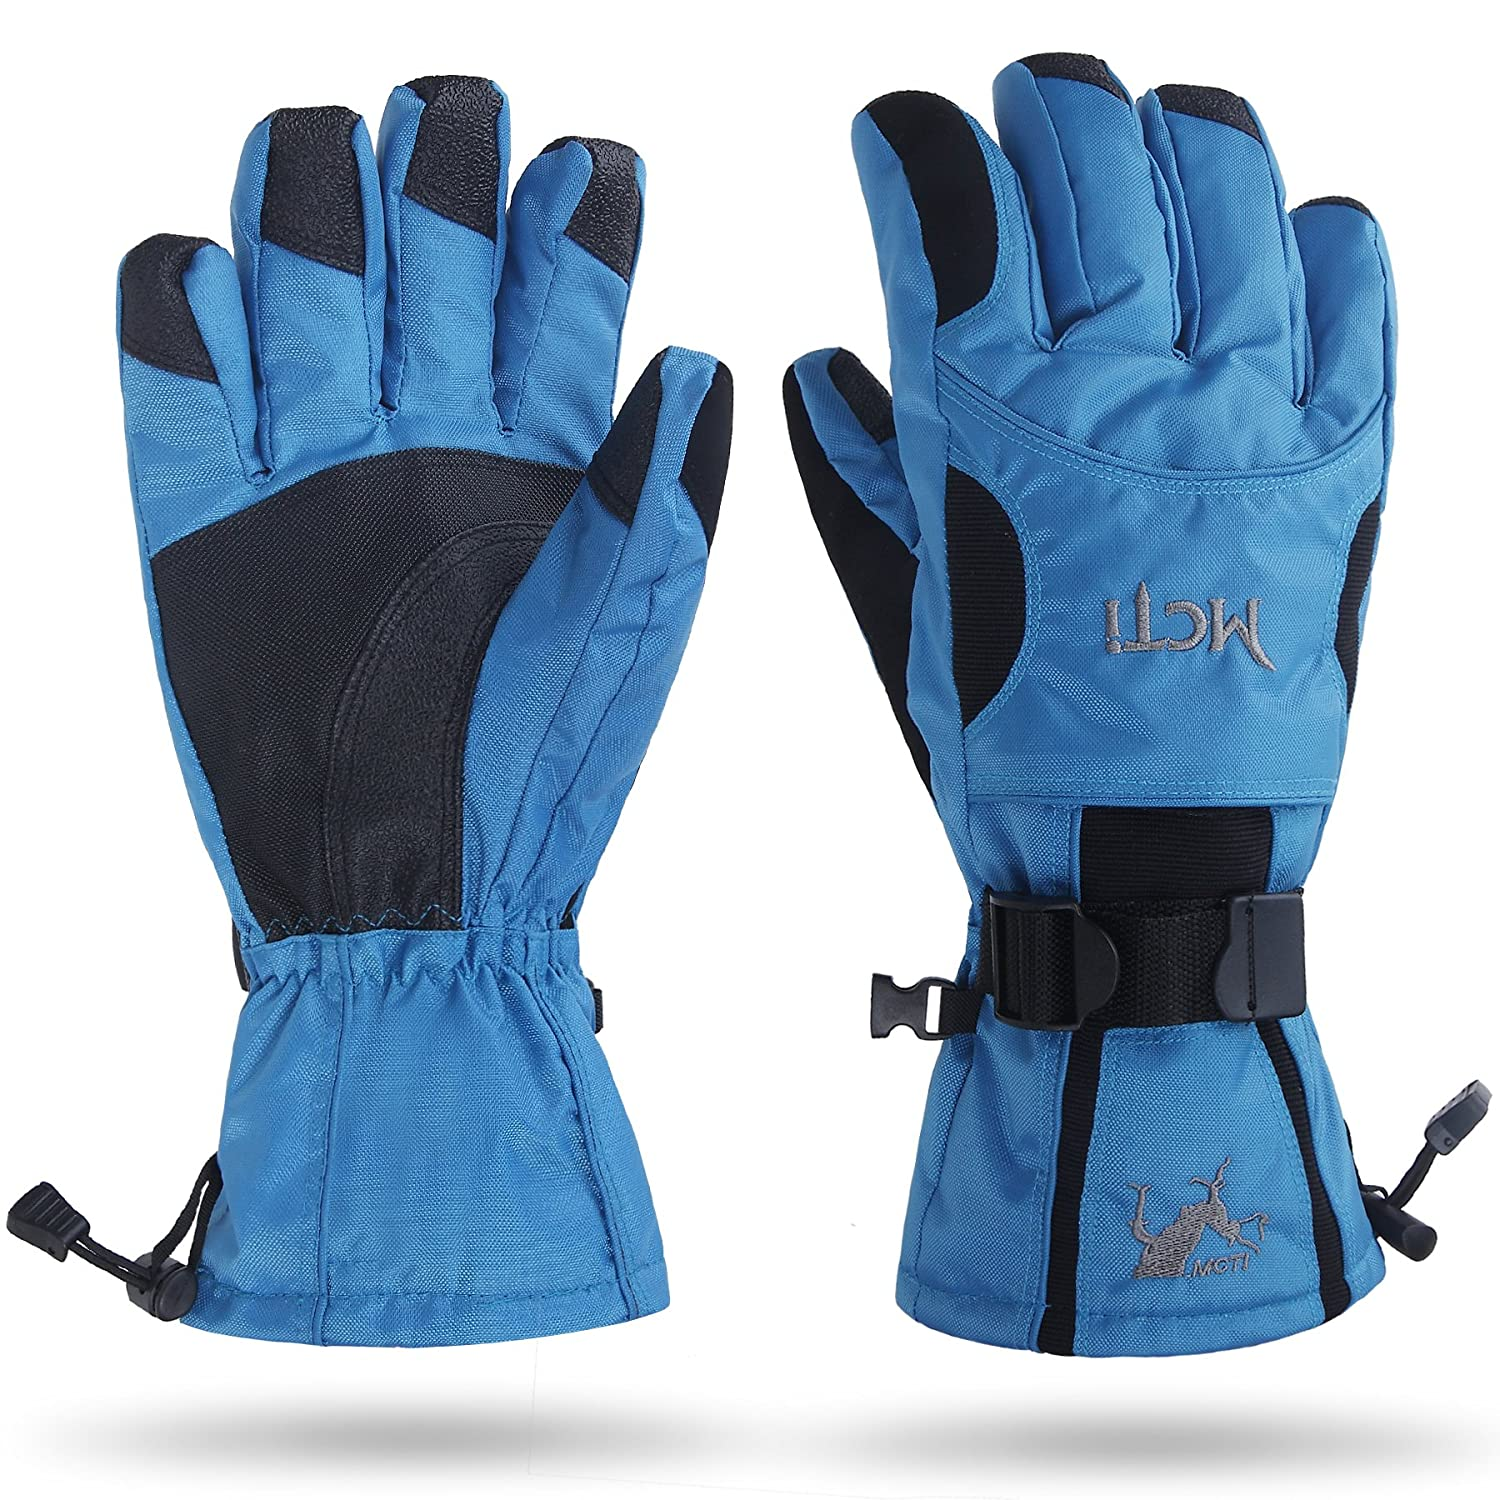 Motorcycle gloves with id pocket - Amazon Com Mcti Waterproof Winter Snow Skiing Snowboarding Warm Zipper Pocket Men S Gloves Sports Outdoors